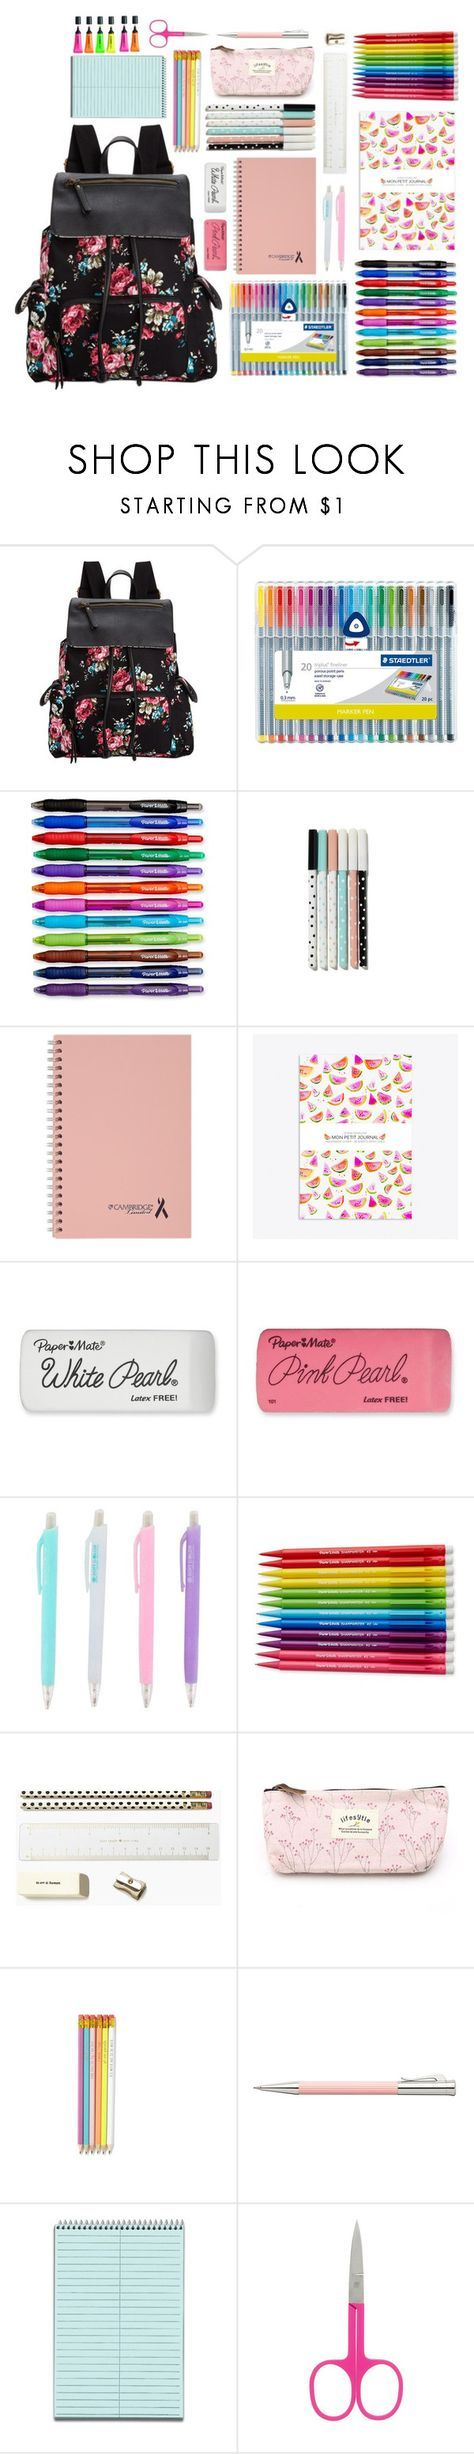 """""""#42 Back To School Supplies (3)"""" by konstantina00085 ❤ liked on Polyvore featuring interior, interiors, interior design, home, home decor, interior decorating, Madden Girl, Paper Mate, Mead and Kate Spade"""